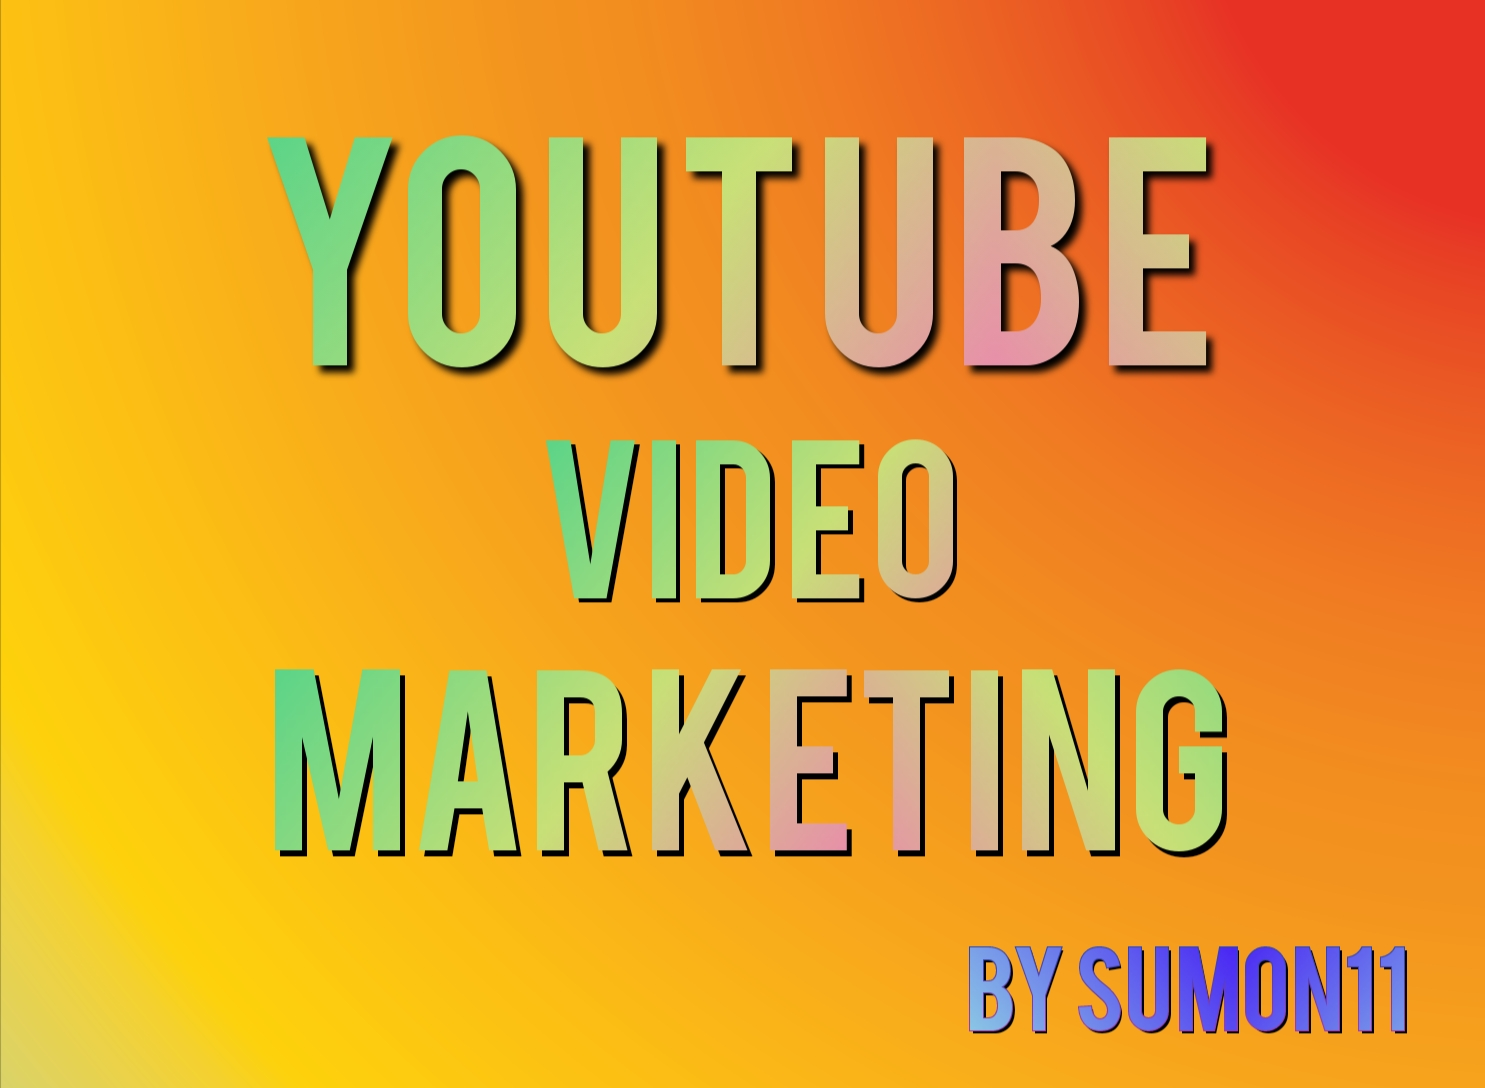 All in one youtube video promotion social media marketing by Sumon11